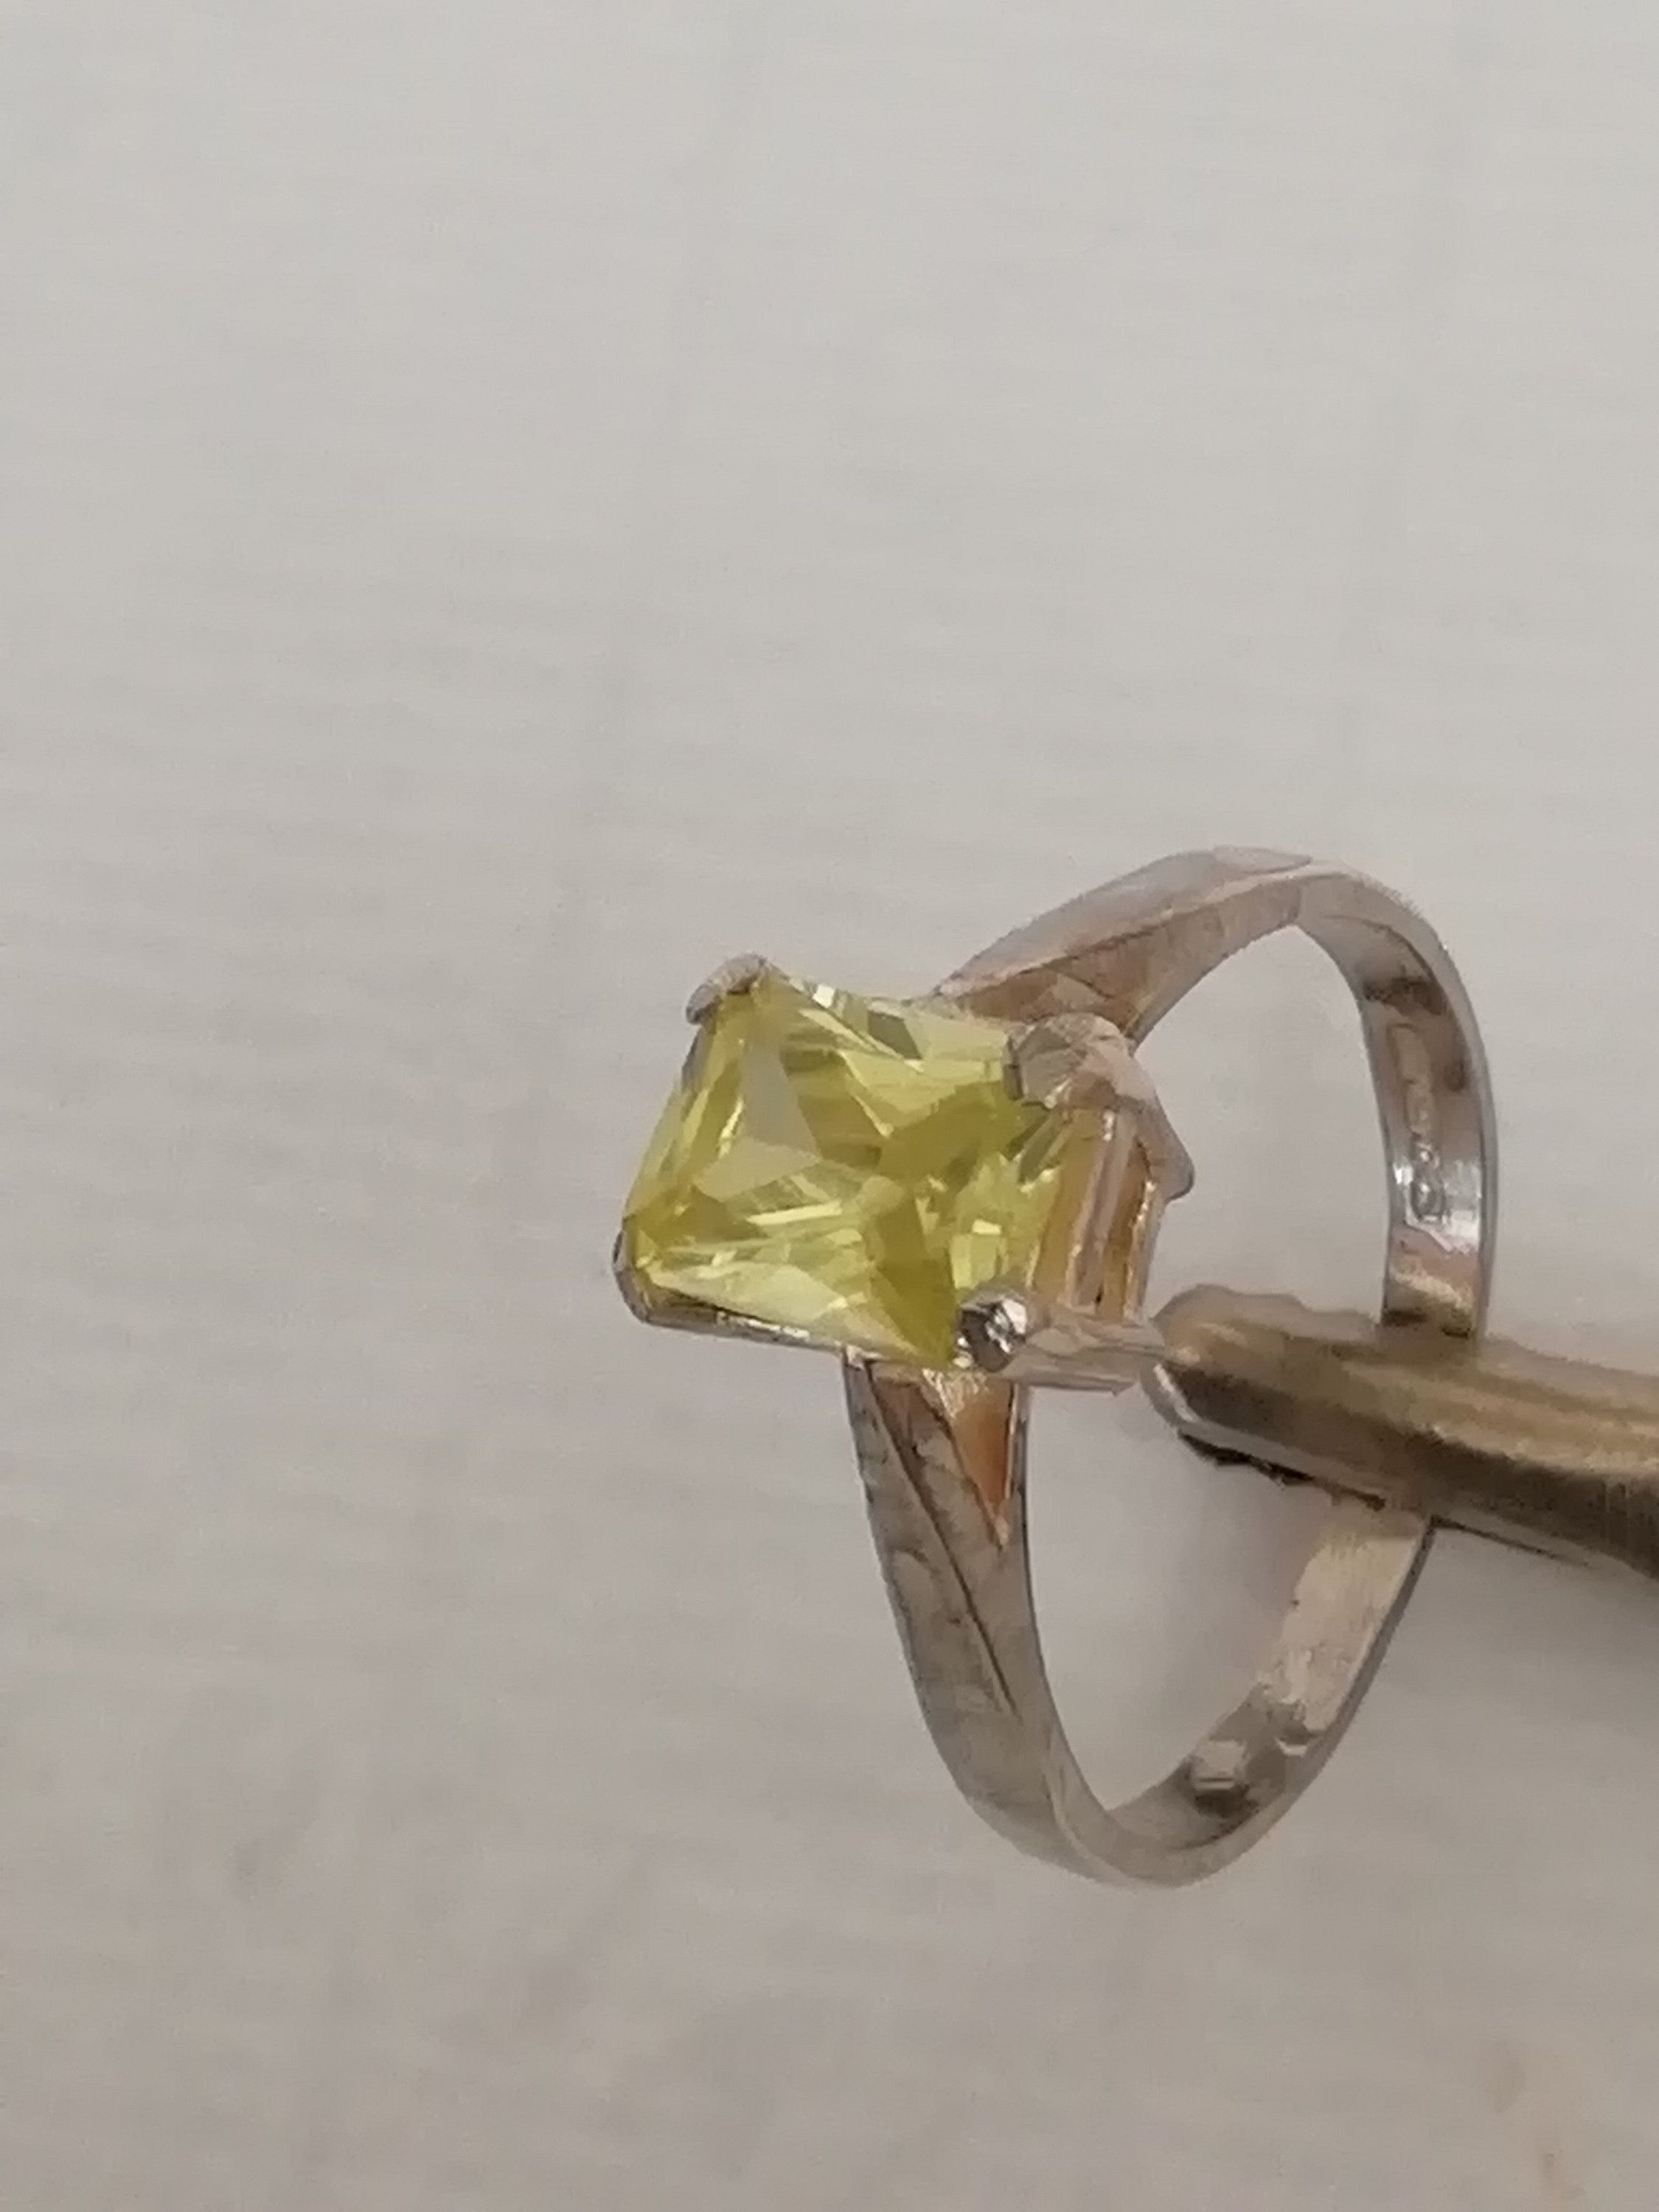 56973fc35 Peridot 9ct gold Handmade by MidasTouch Jewels in Wales by MidasTouchJewels  on Etsy